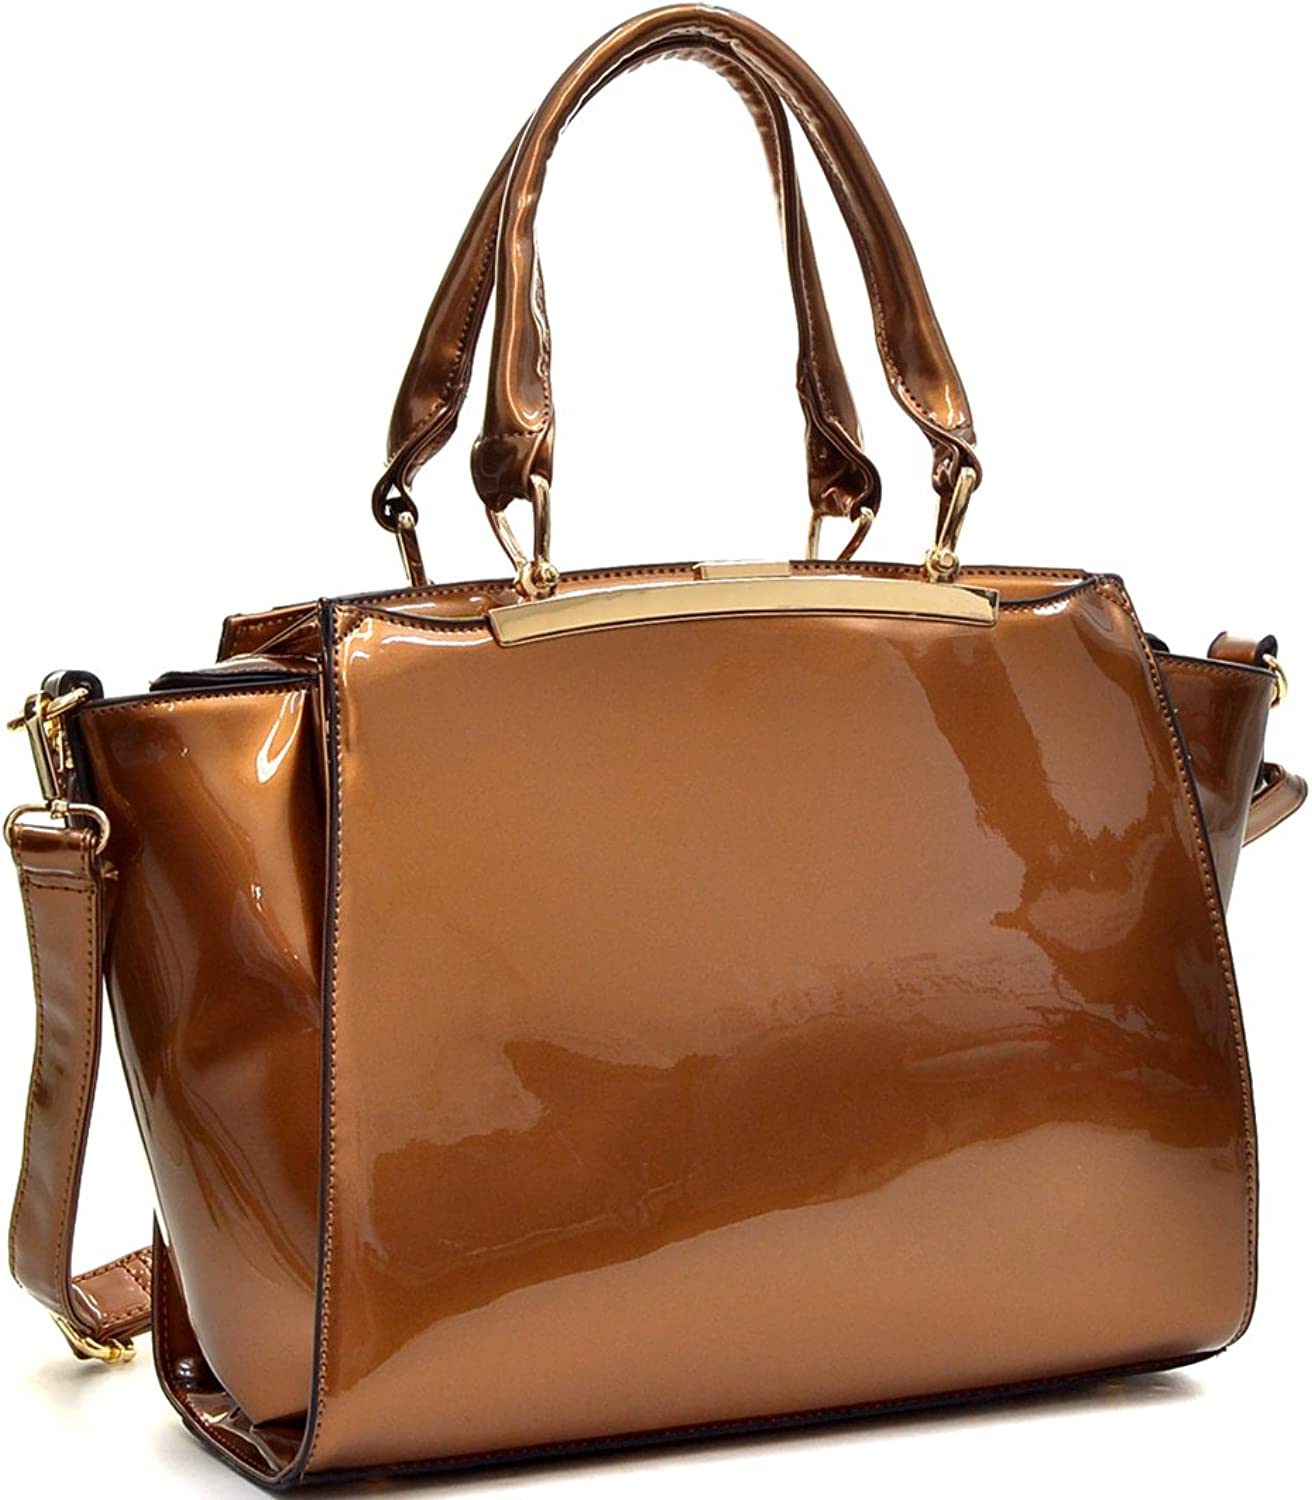 Dasein Patent Leather Winged Satchel Shoulder Bag Handbag with Hidden Side Pockets